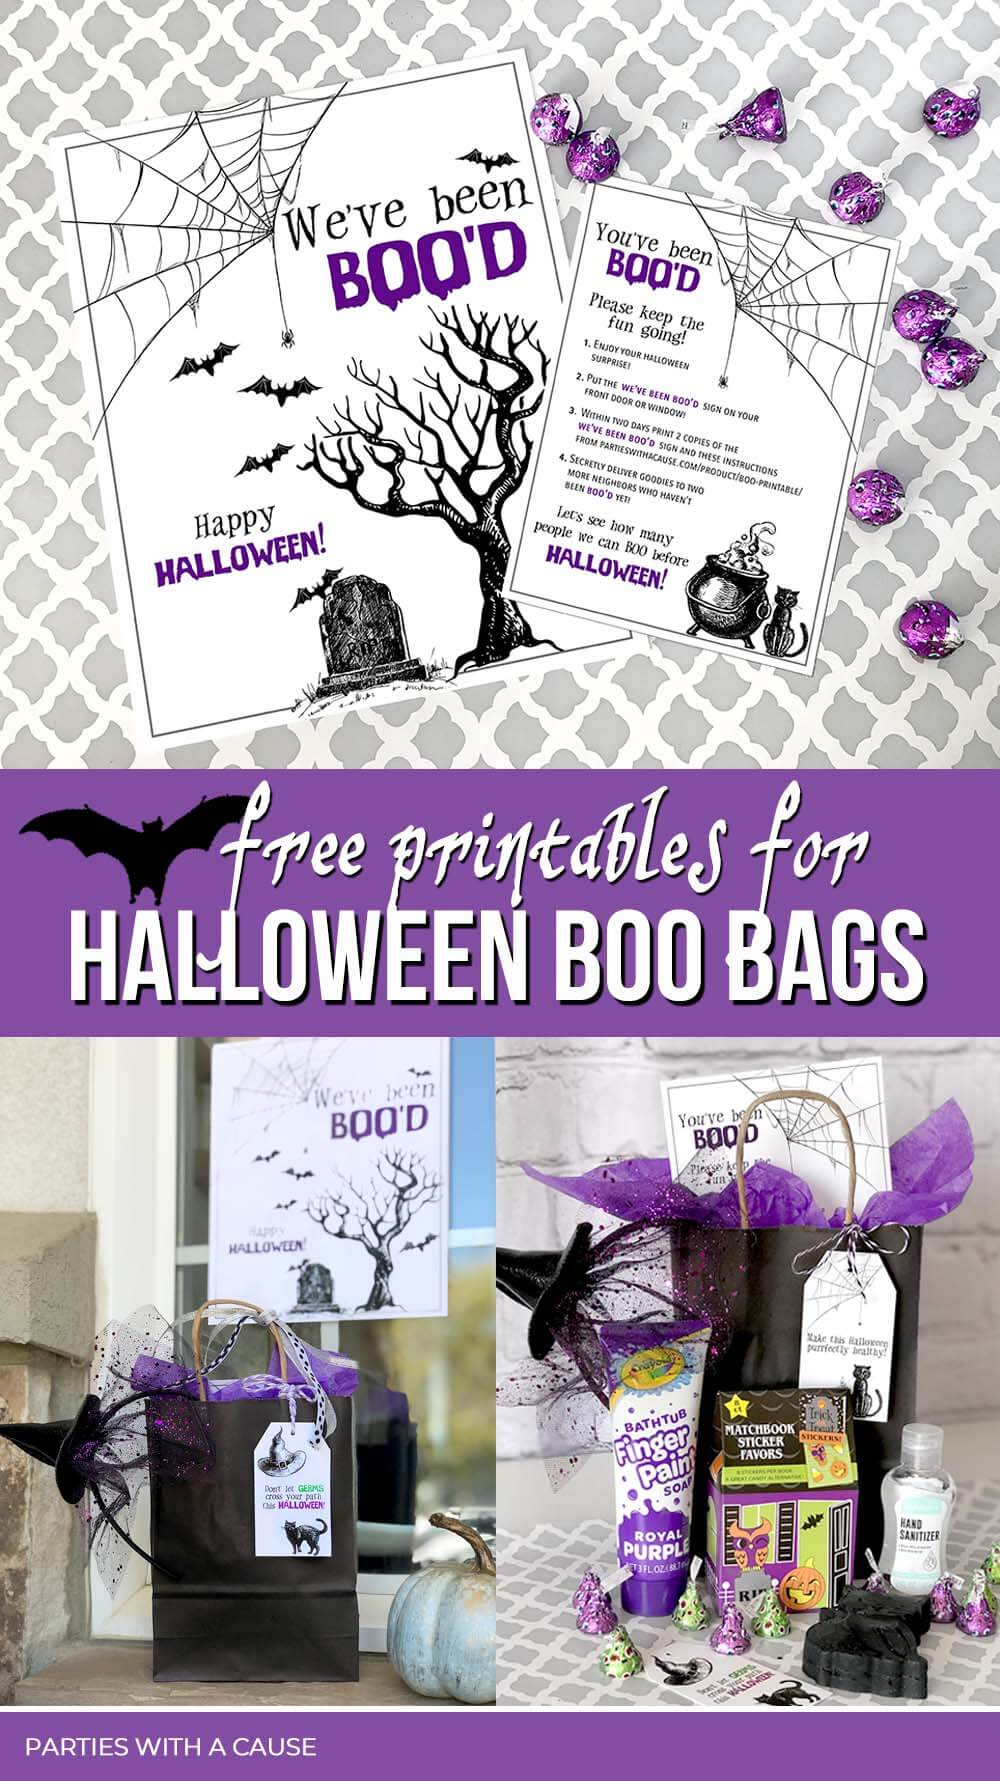 Free printables for Halloween boo game by Salt Lake Party Stylist